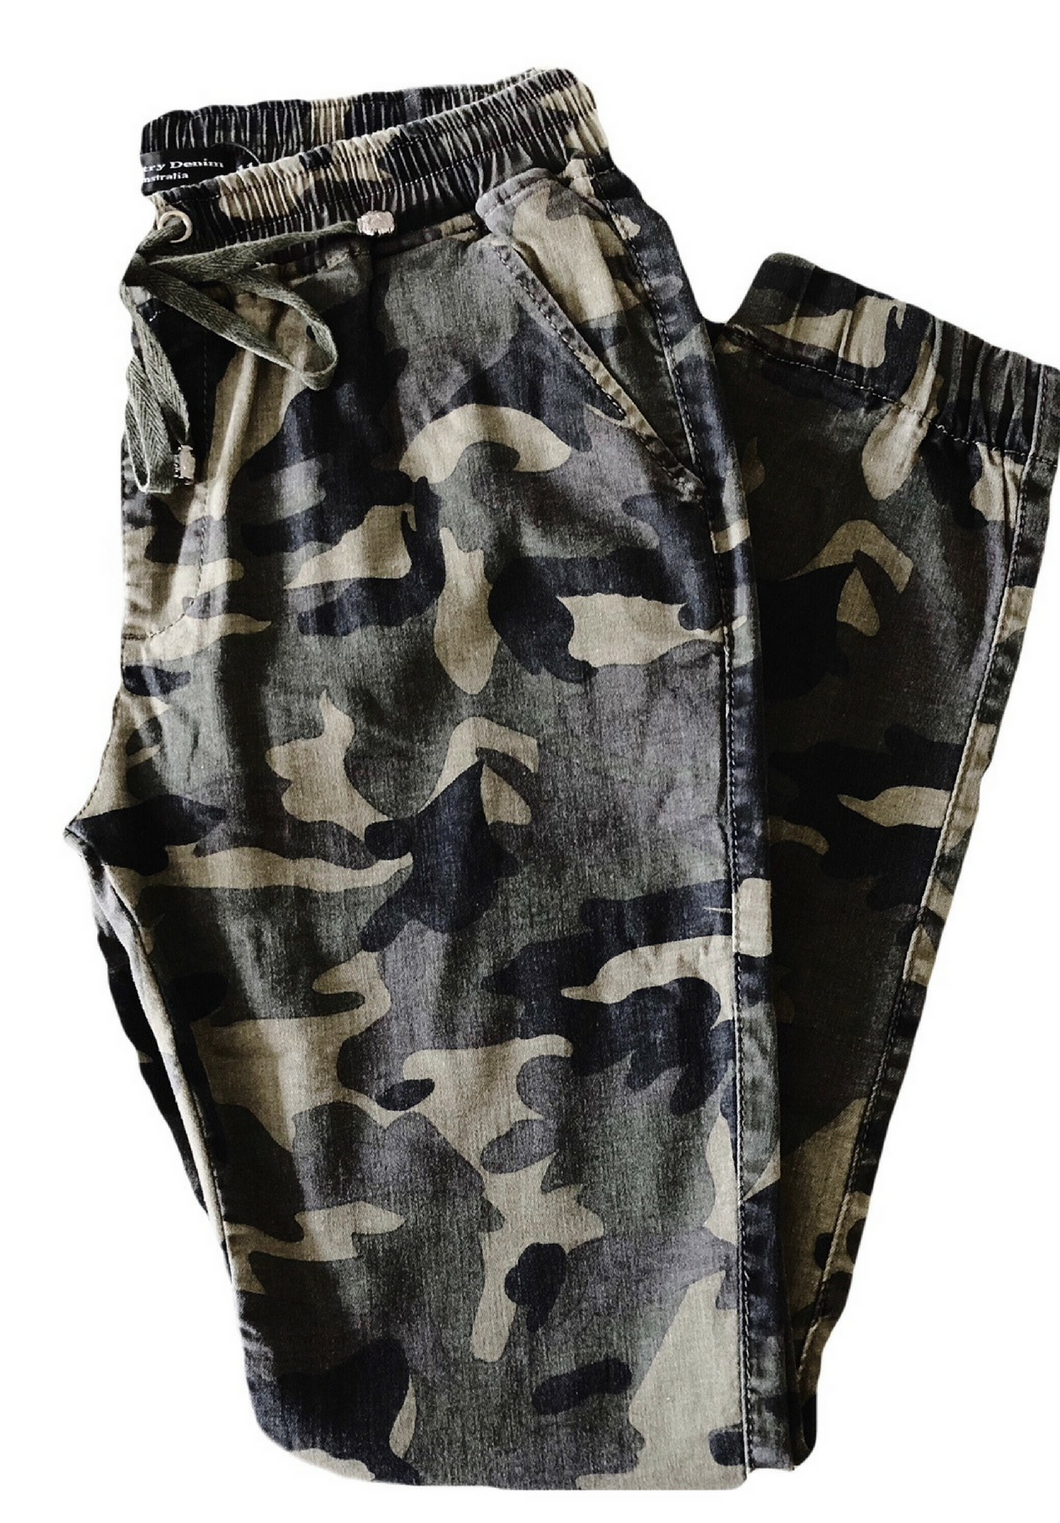 Camo Joggers - My Bargains Boutique